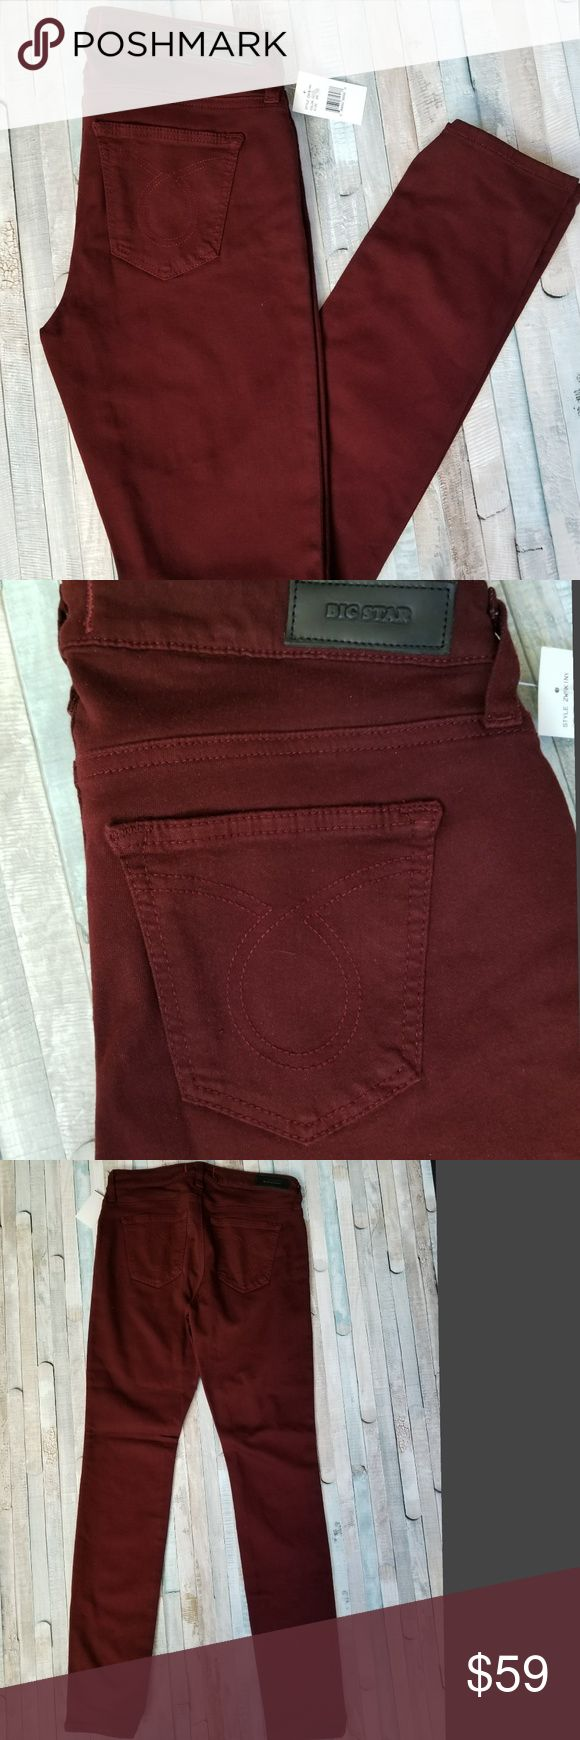 "Big Star Maddie Skinny Jeans NWT Beautiful Big Star Maddie skinny jeans in the color ""new beet"" with embroidered back pockets  Size on Tag: 28R Color: Beet Red Style: Skinny jean Condition: New with Tags Non-smoking pet friendly home  Approximate measurements: Waist flat: 14.5"" Rise: 8.5"" Inseam: 32"" Ankle width flat: 5.5""  J113 Big Star Jeans Skinny"